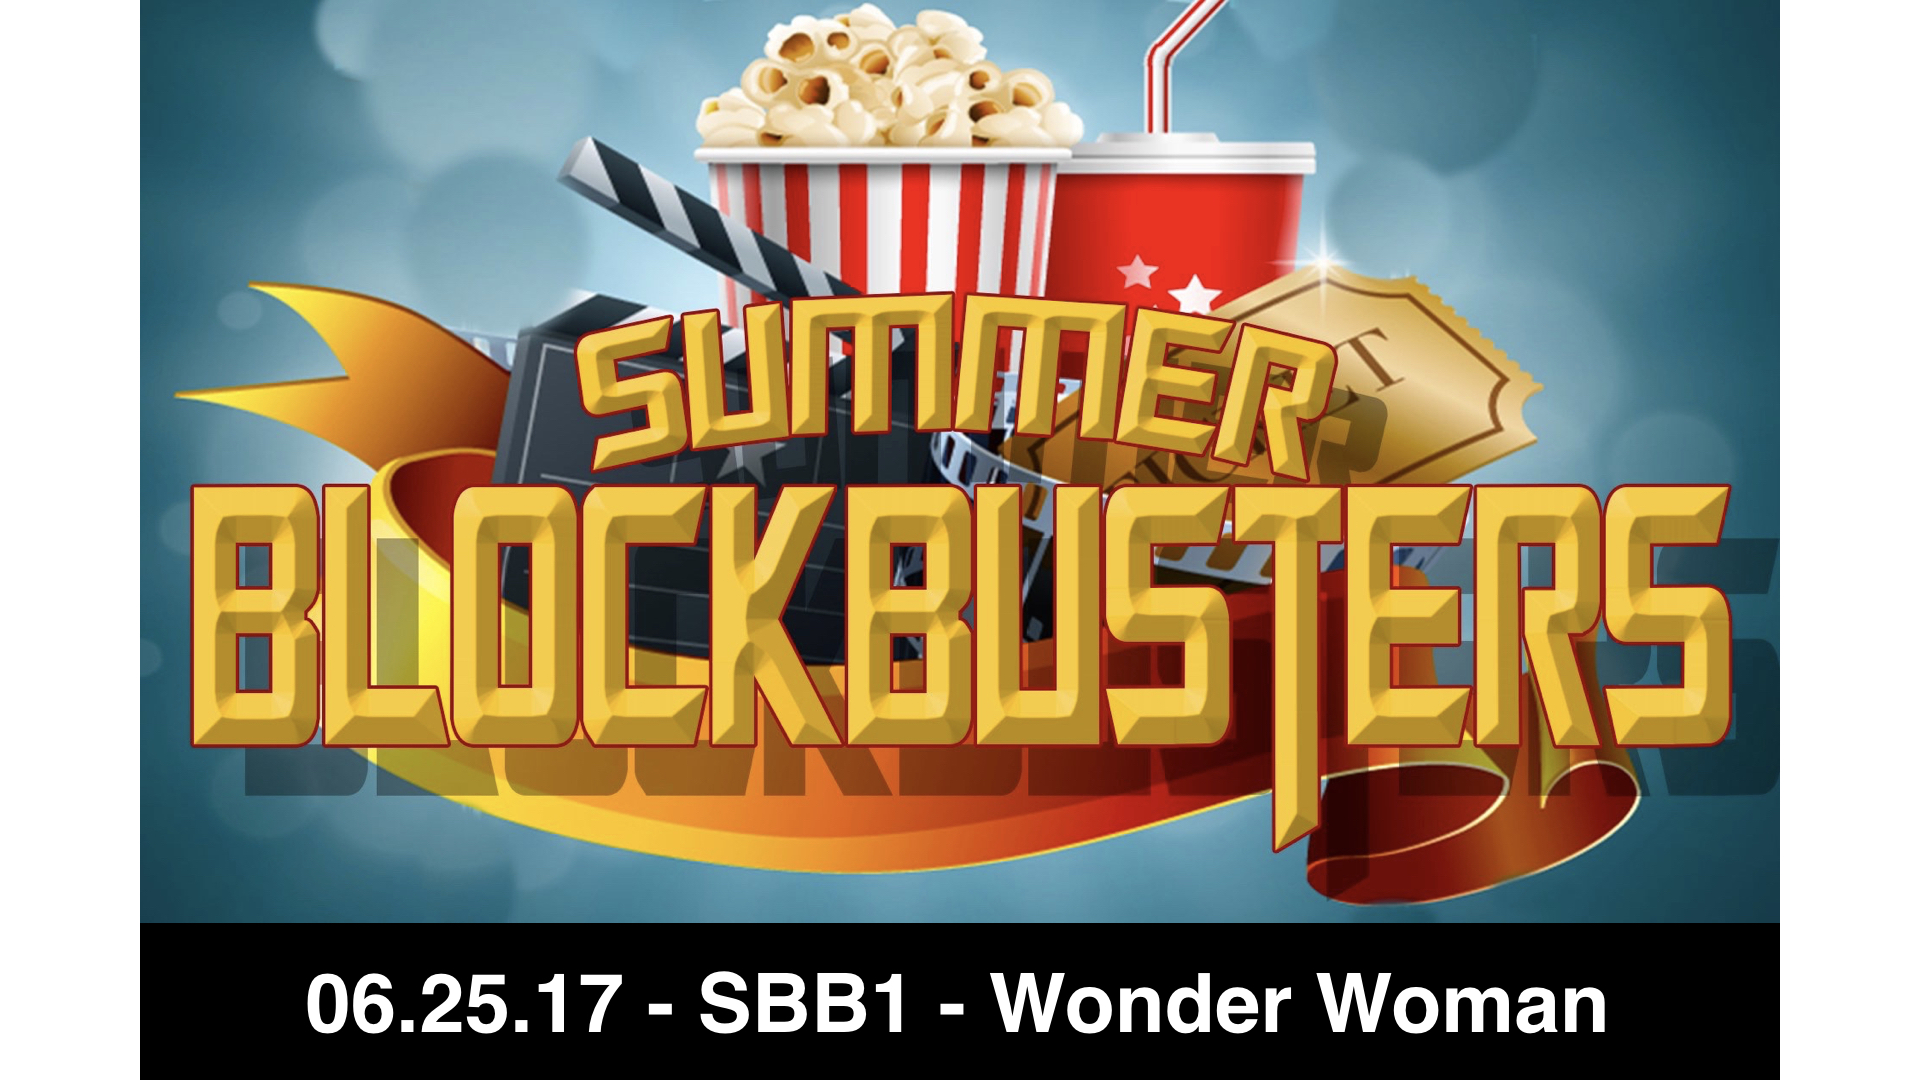 06.25.17 - SBB 1 - Wonder Woman